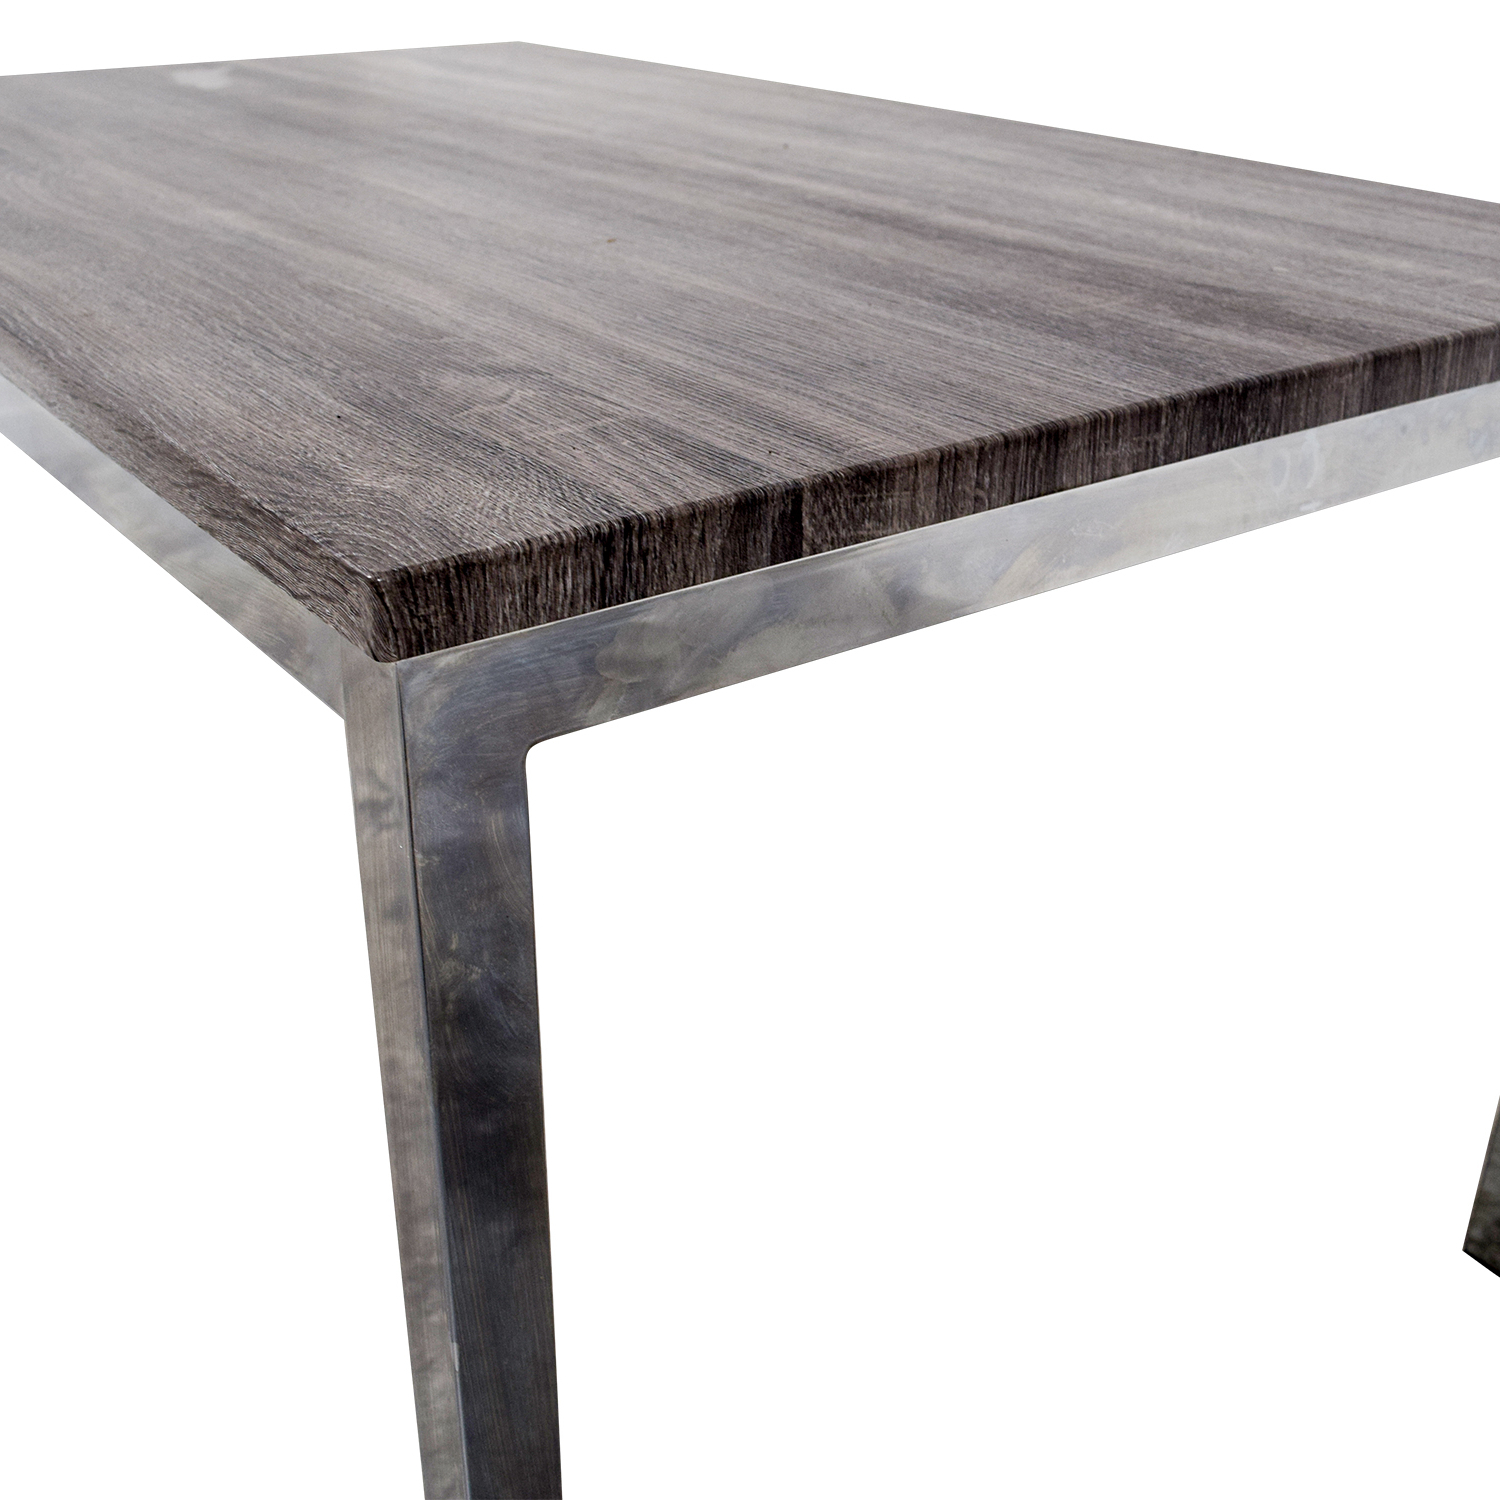 [%31% Off – Wildon Home Wildon Home Rustic Wood Top And Chrome Dining Table / Tables Throughout Most Current Sideboards By Wildon Home|sideboards By Wildon Home In Most Popular 31% Off – Wildon Home Wildon Home Rustic Wood Top And Chrome Dining Table / Tables|most Recent Sideboards By Wildon Home With 31% Off – Wildon Home Wildon Home Rustic Wood Top And Chrome Dining Table / Tables|recent 31% Off – Wildon Home Wildon Home Rustic Wood Top And Chrome Dining Table / Tables Pertaining To Sideboards By Wildon Home%] (View 14 of 20)